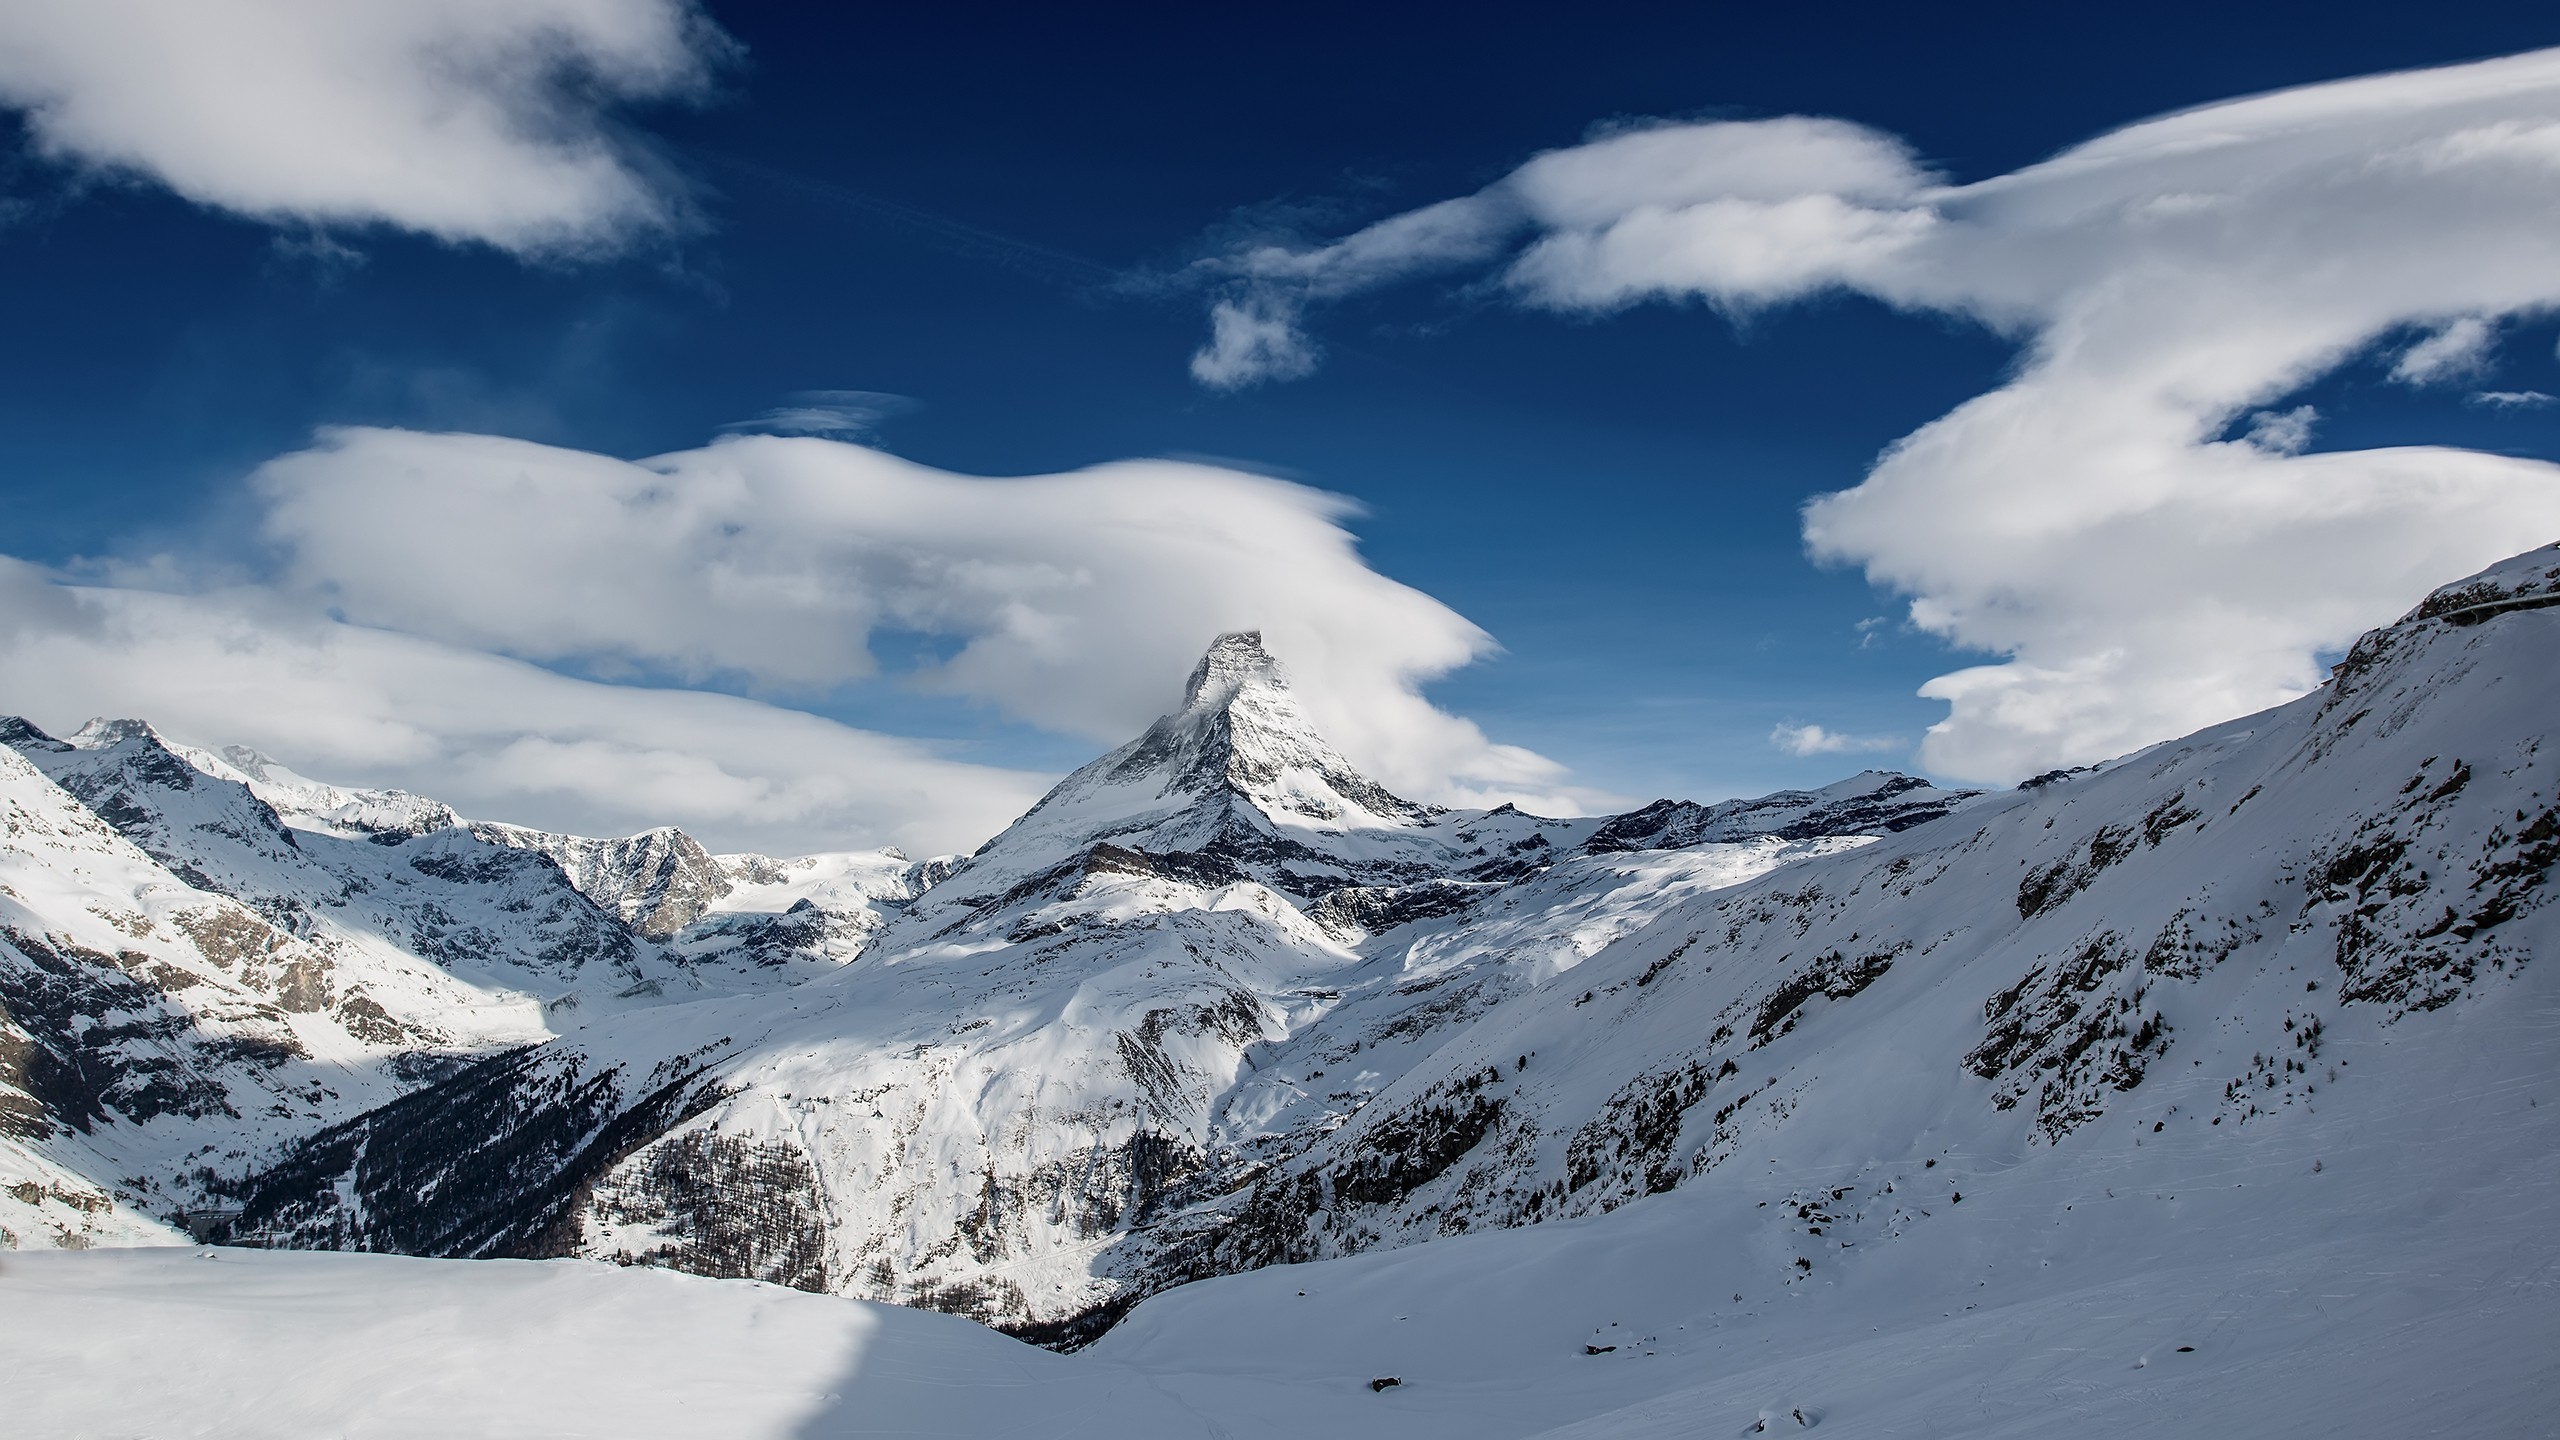 nature Mountain Clouds Snow Ice Landscape Wallpapers HD 2560x1440